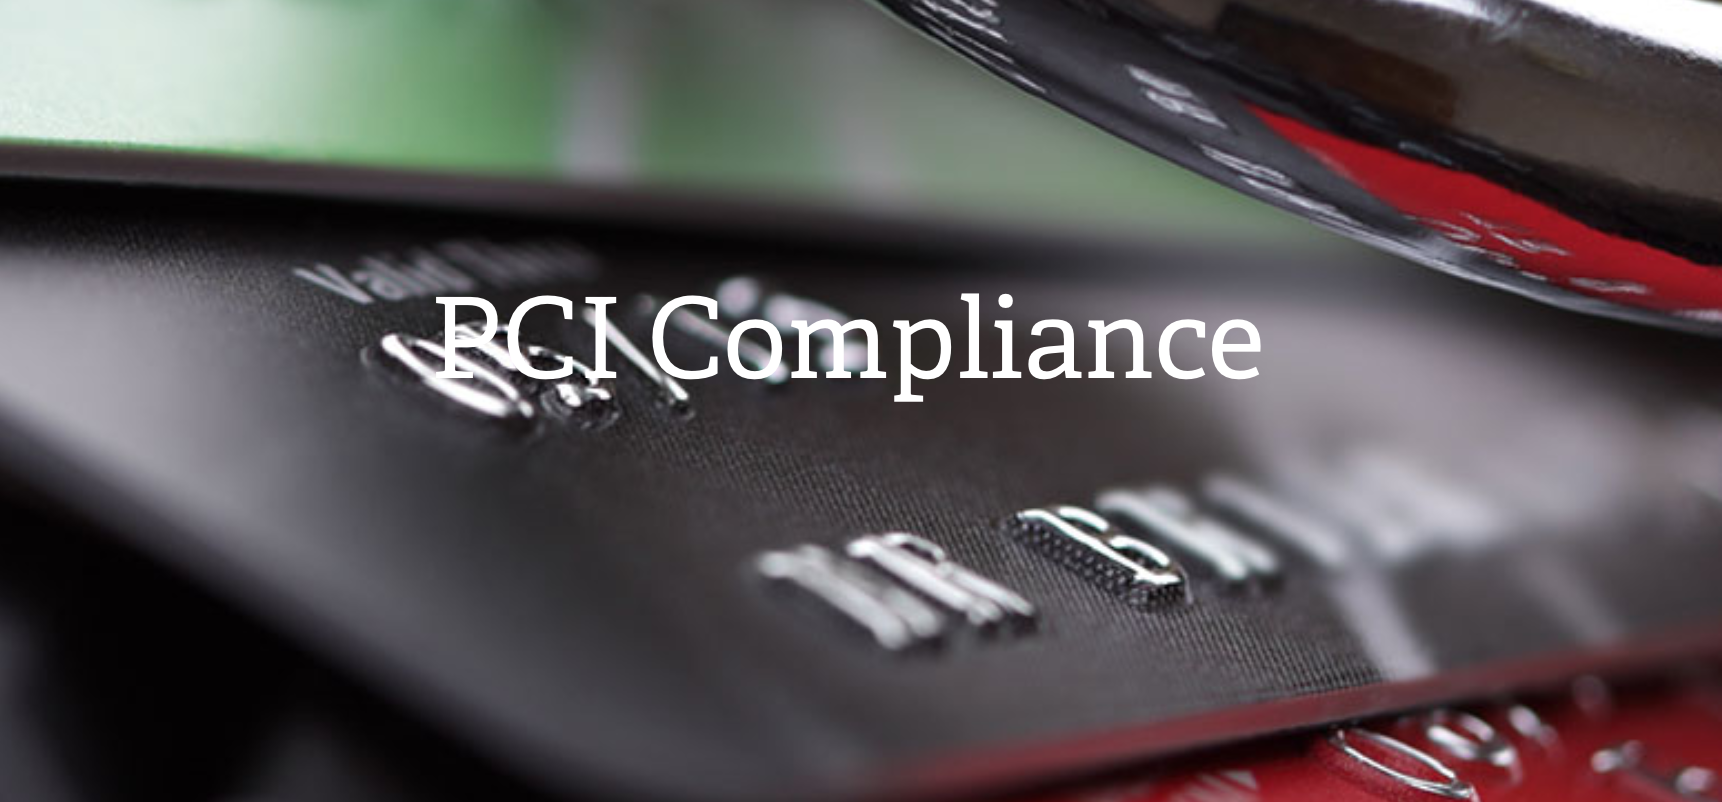 3 Ways Restaurants Can Tackle PCI Compliance  Every restaurant that accepts credit cards has to reach Payment Card Industry Data Security Standard (PCI DSS) compliance.  This compliance – composed of a series of requirements – helps with cardholder data security and protects against malware, lessening the chance of security breaches.  From managing employee access to the logistics of filling out forms, compliance can be a source of confusion for restaurant owners – but it doesn't have to be. Here are some ways restaurant owners can tackle even the trickiest parts of PCI DSS compliance, and ensure they stay focused on serving up excellent food.   1. Use unique employee IDs: A common pain point for reaching PCI DSS compliance is employees' access to data – especially when several machines and staff members are running payment cards. Restaurants should make sure their POS system allows employees to use unique identifications to access information. It's also necessary to encrypt data. Restaurants that use an older POS system may want to contact their processor to ensure all data is encrypted.   2. Work with processors: Most processors offer PCI programs, helping their customers and supporting the merchant through the process. Some processors will charge a PCI DSS compliance assistance fee – if they do, restaurants should take advantage of it. Processors can help business owners complete the annual self-assessment questionnaire (SAQ). Although maintaining PCI DSS compliance is not legally required, many major processors will charge a non-compliance fee, which is easily avoidable if businesses meet compliance standards.   3. Mark your calendars: It's important to protect customers' data and monitor compliance year-round, so restaurants should take extra precaution to complete their annual SAQ to guarantee they're still on track. There are nine different versions of an SAQ, so the type will depend on how your company handles data. It can vary between a simple questionnaire